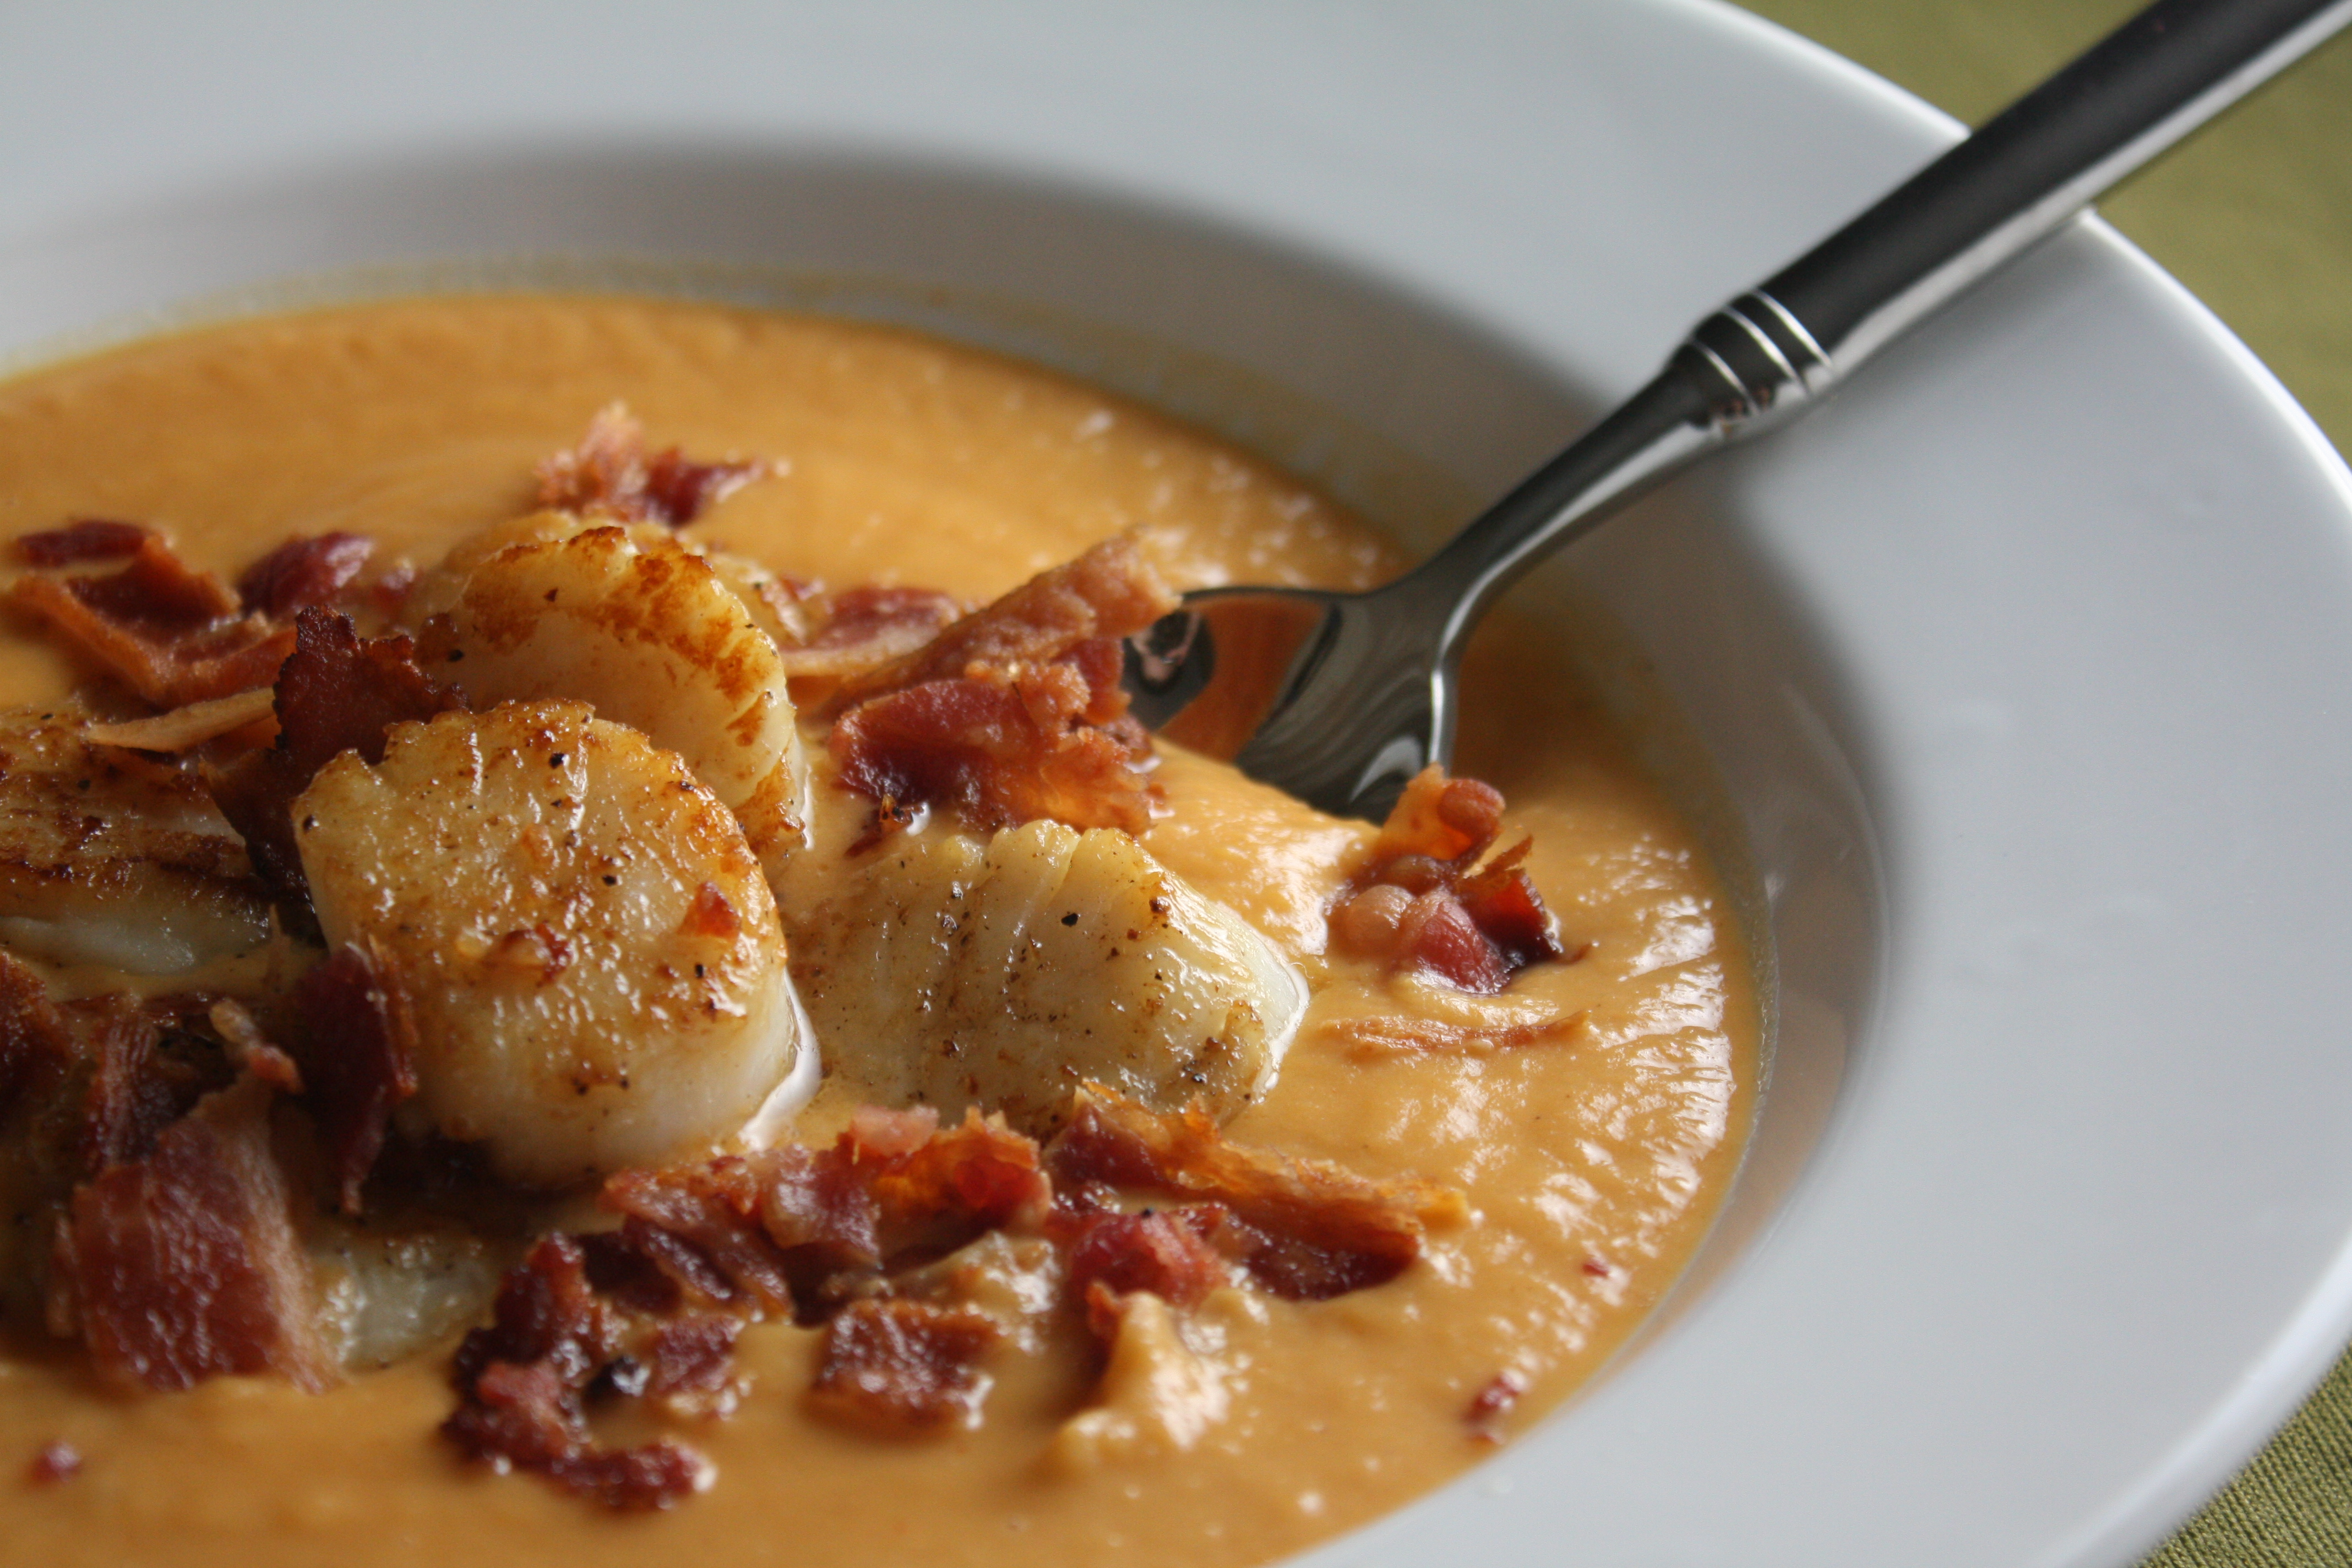 ... Potato Bisque with Pan-Seared Scallops and Bacon | The Gourmand Mom